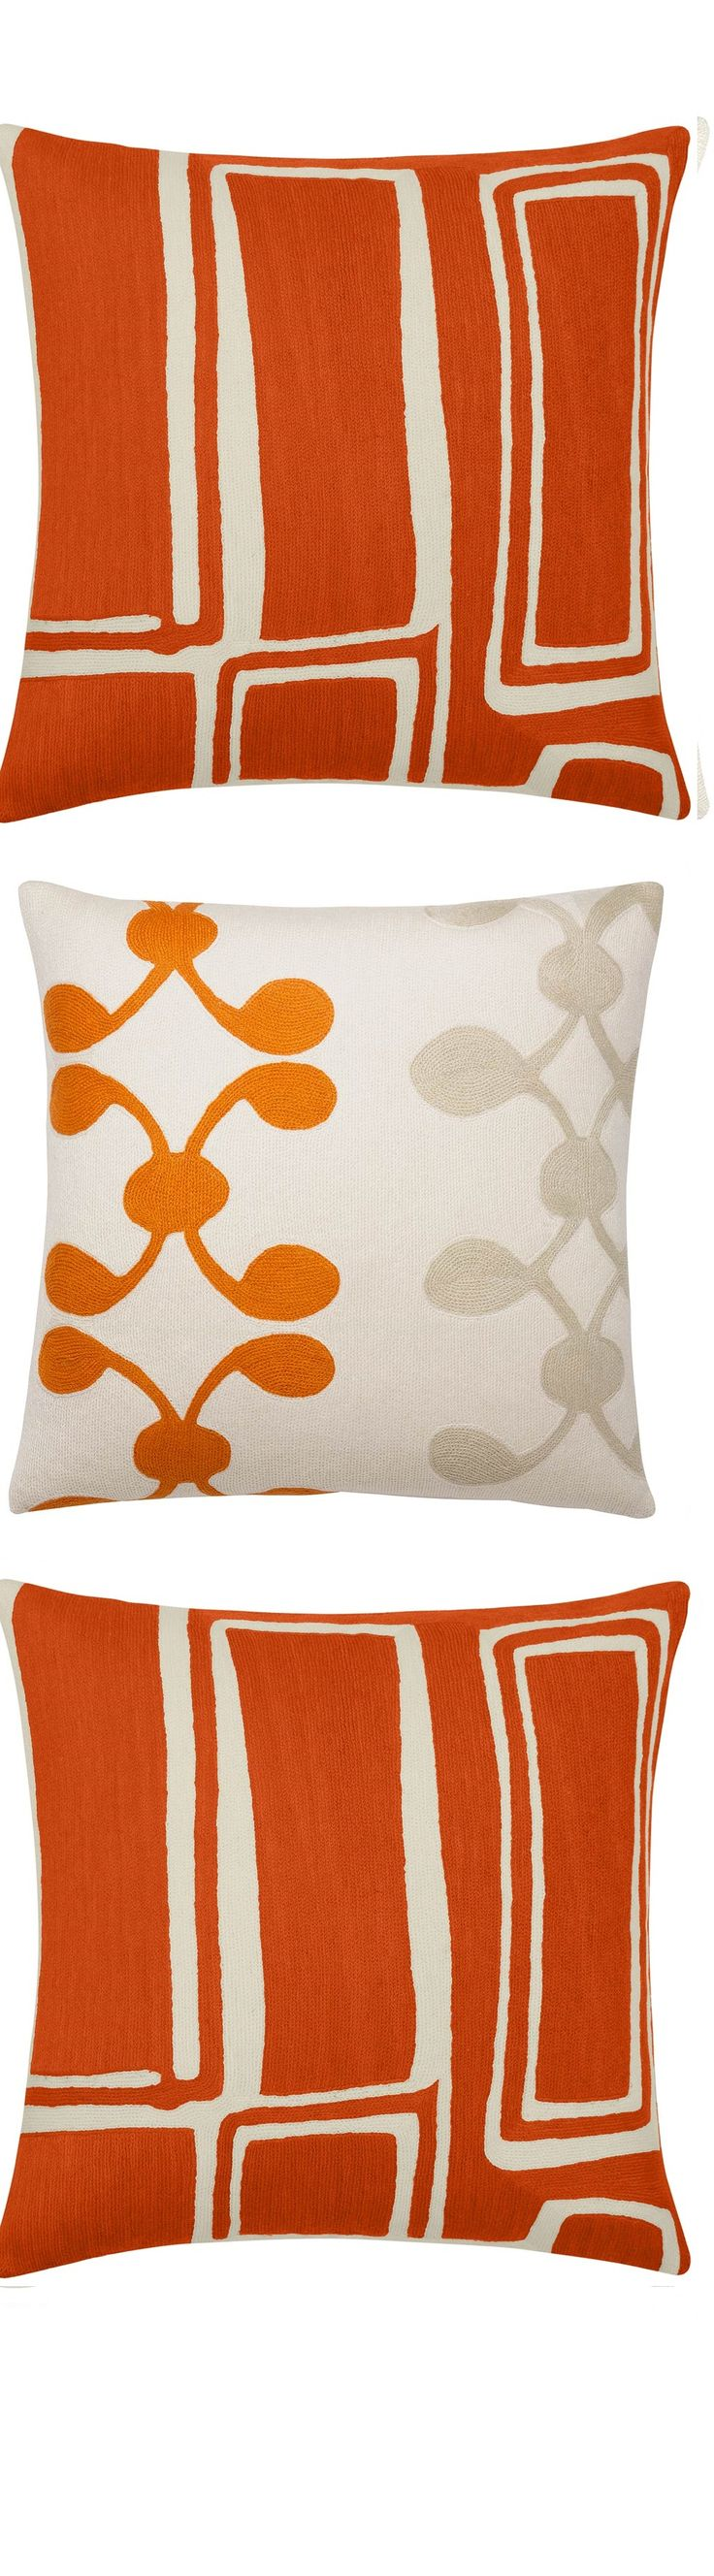 Best 25 Modern pillow covers ideas on Pinterest